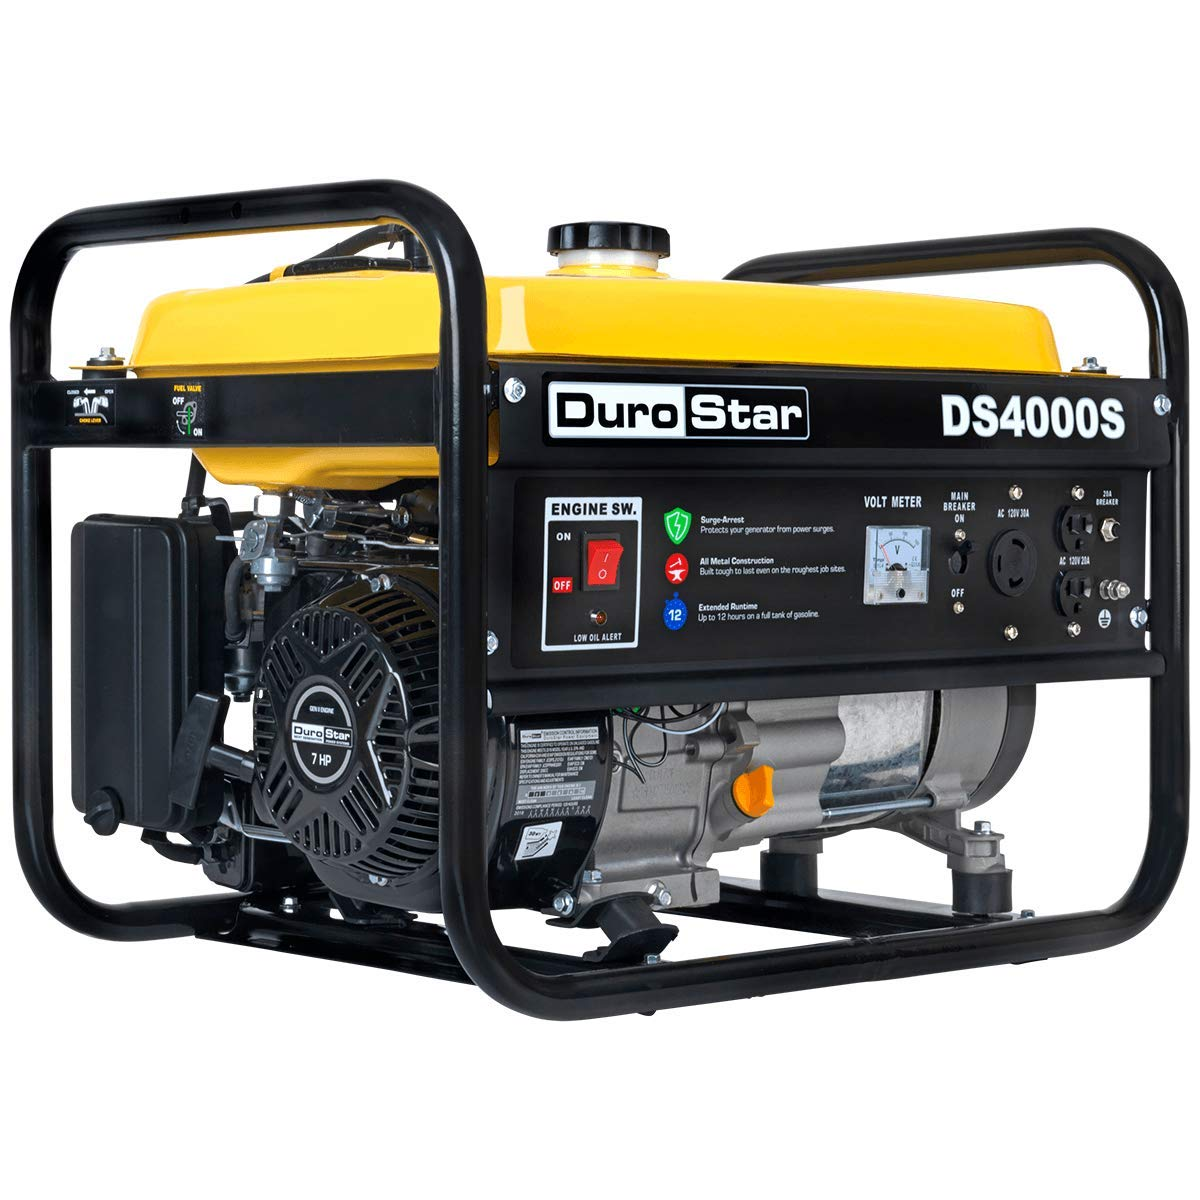 DuroStar DS4000S Gas Powered Portable Generator